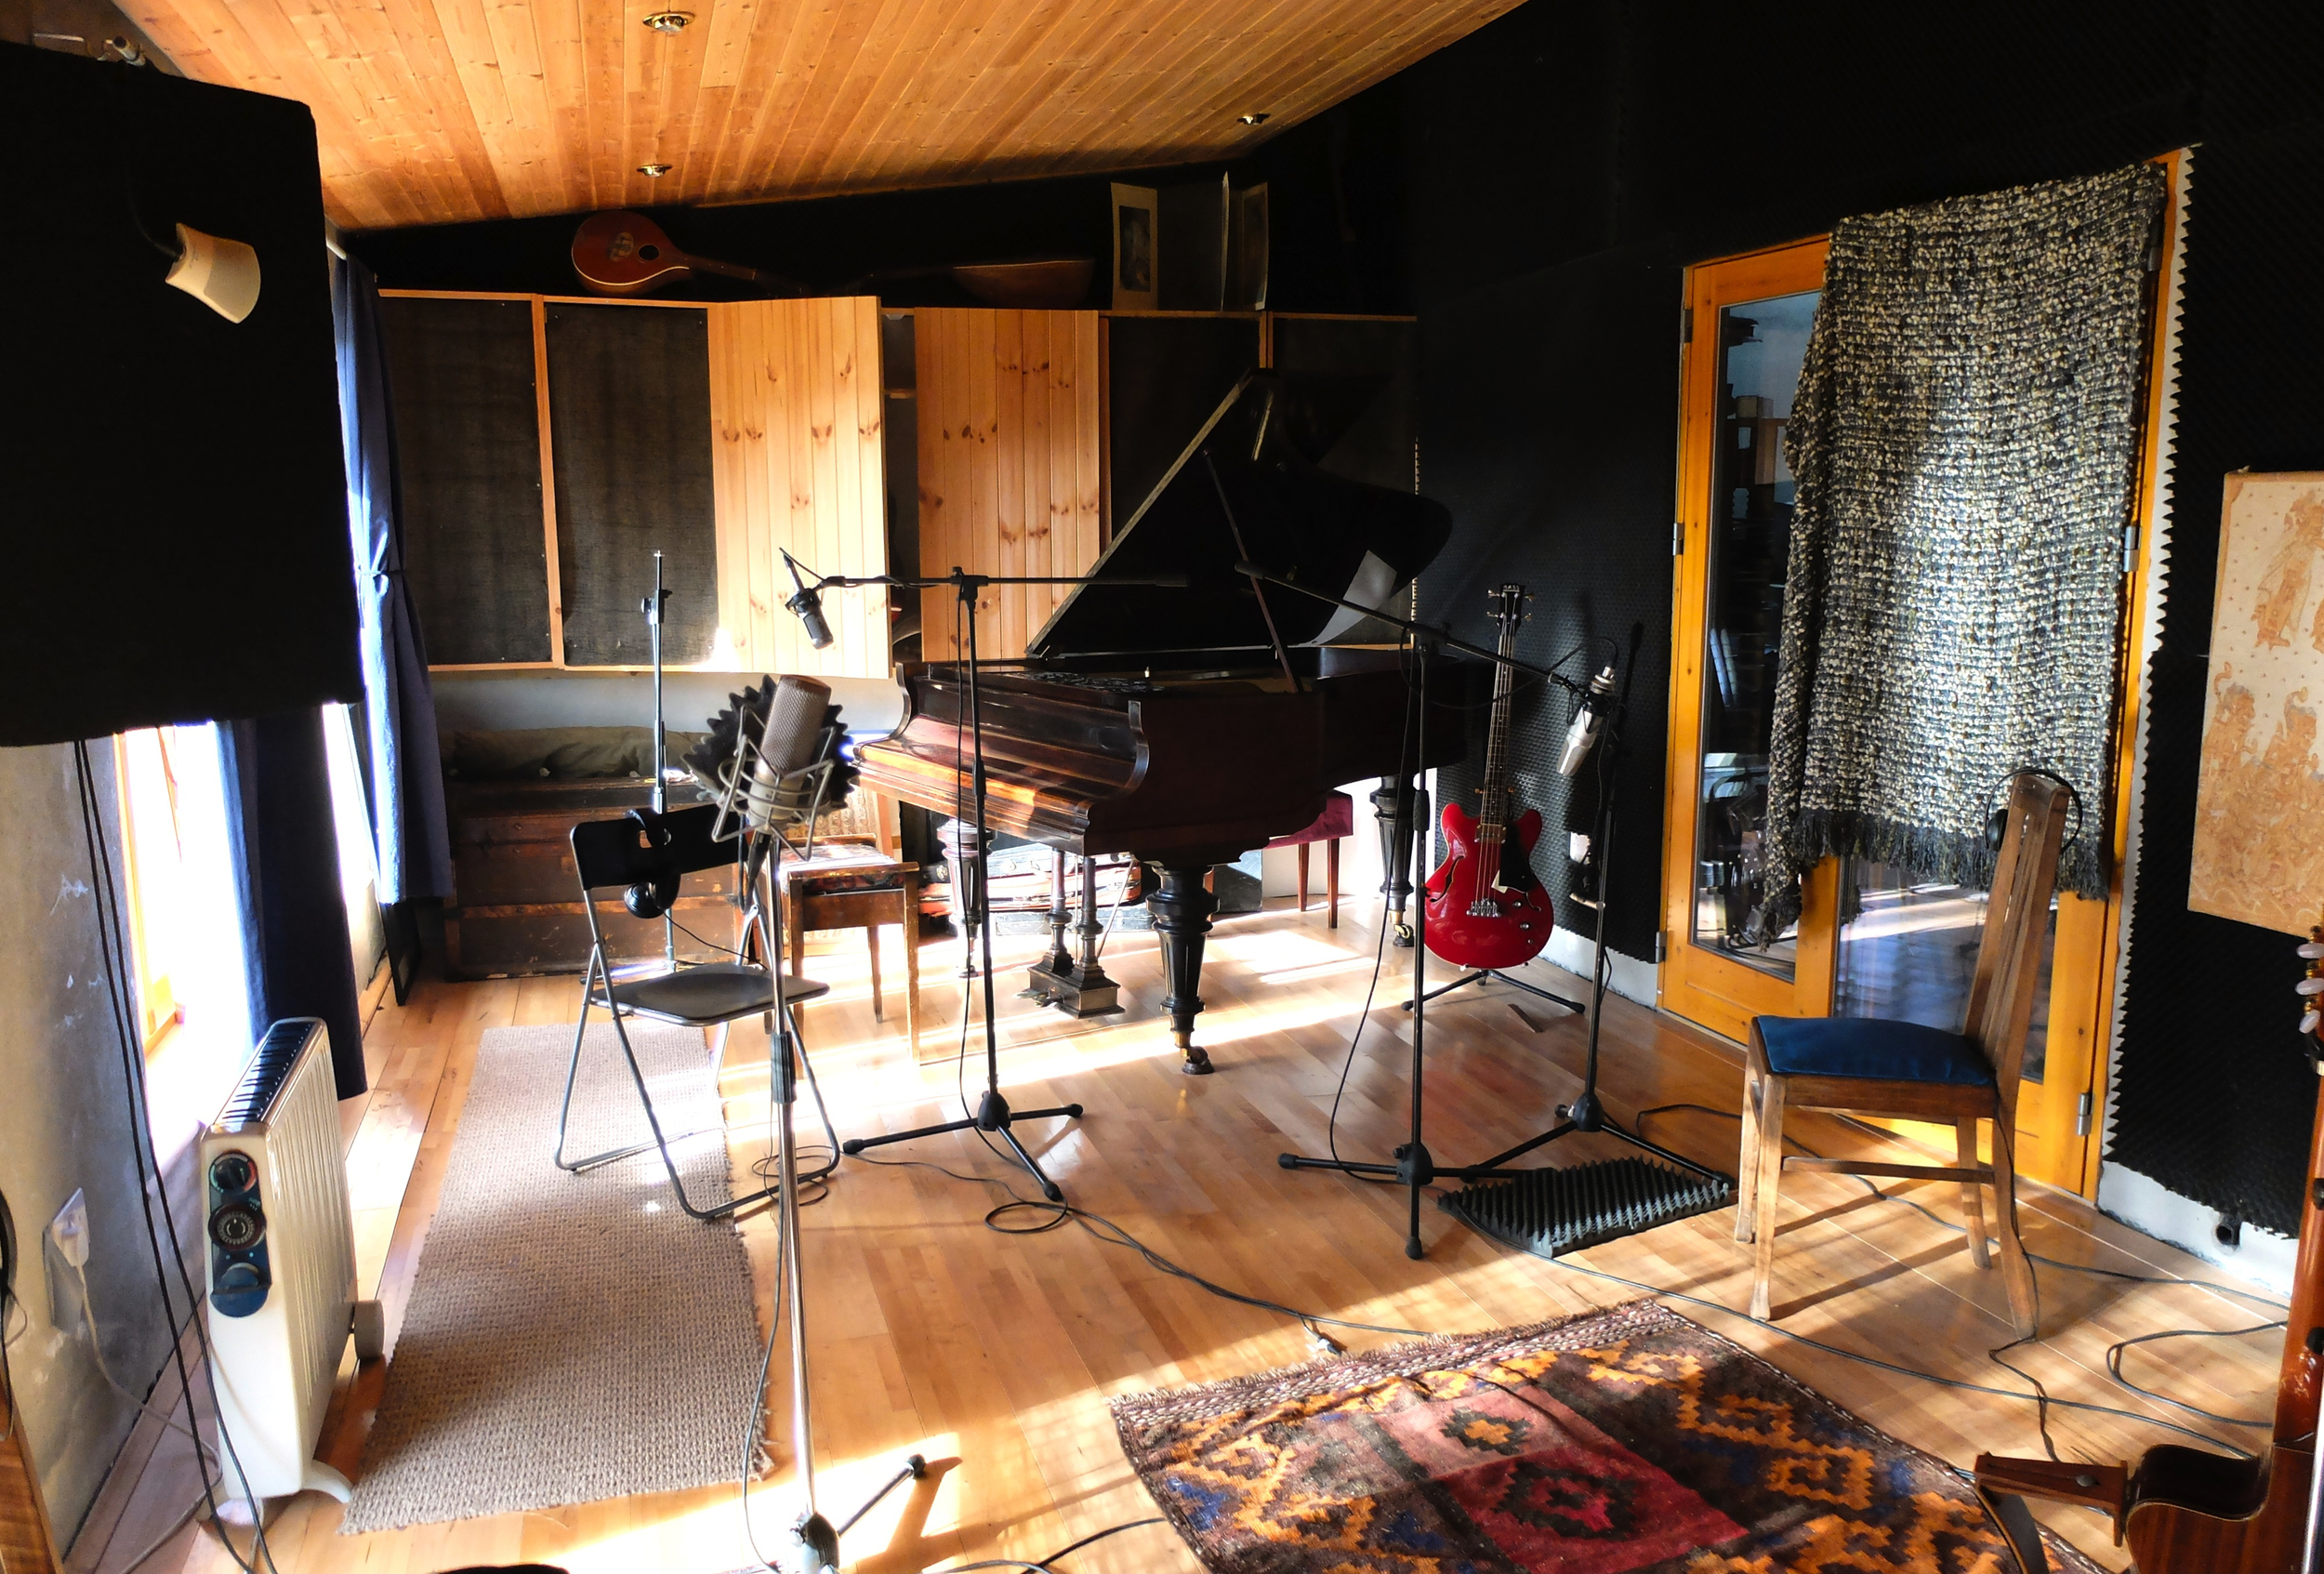 Garry O'Briain's studio in Co Clare where our new album was recorded Feb-May 2015